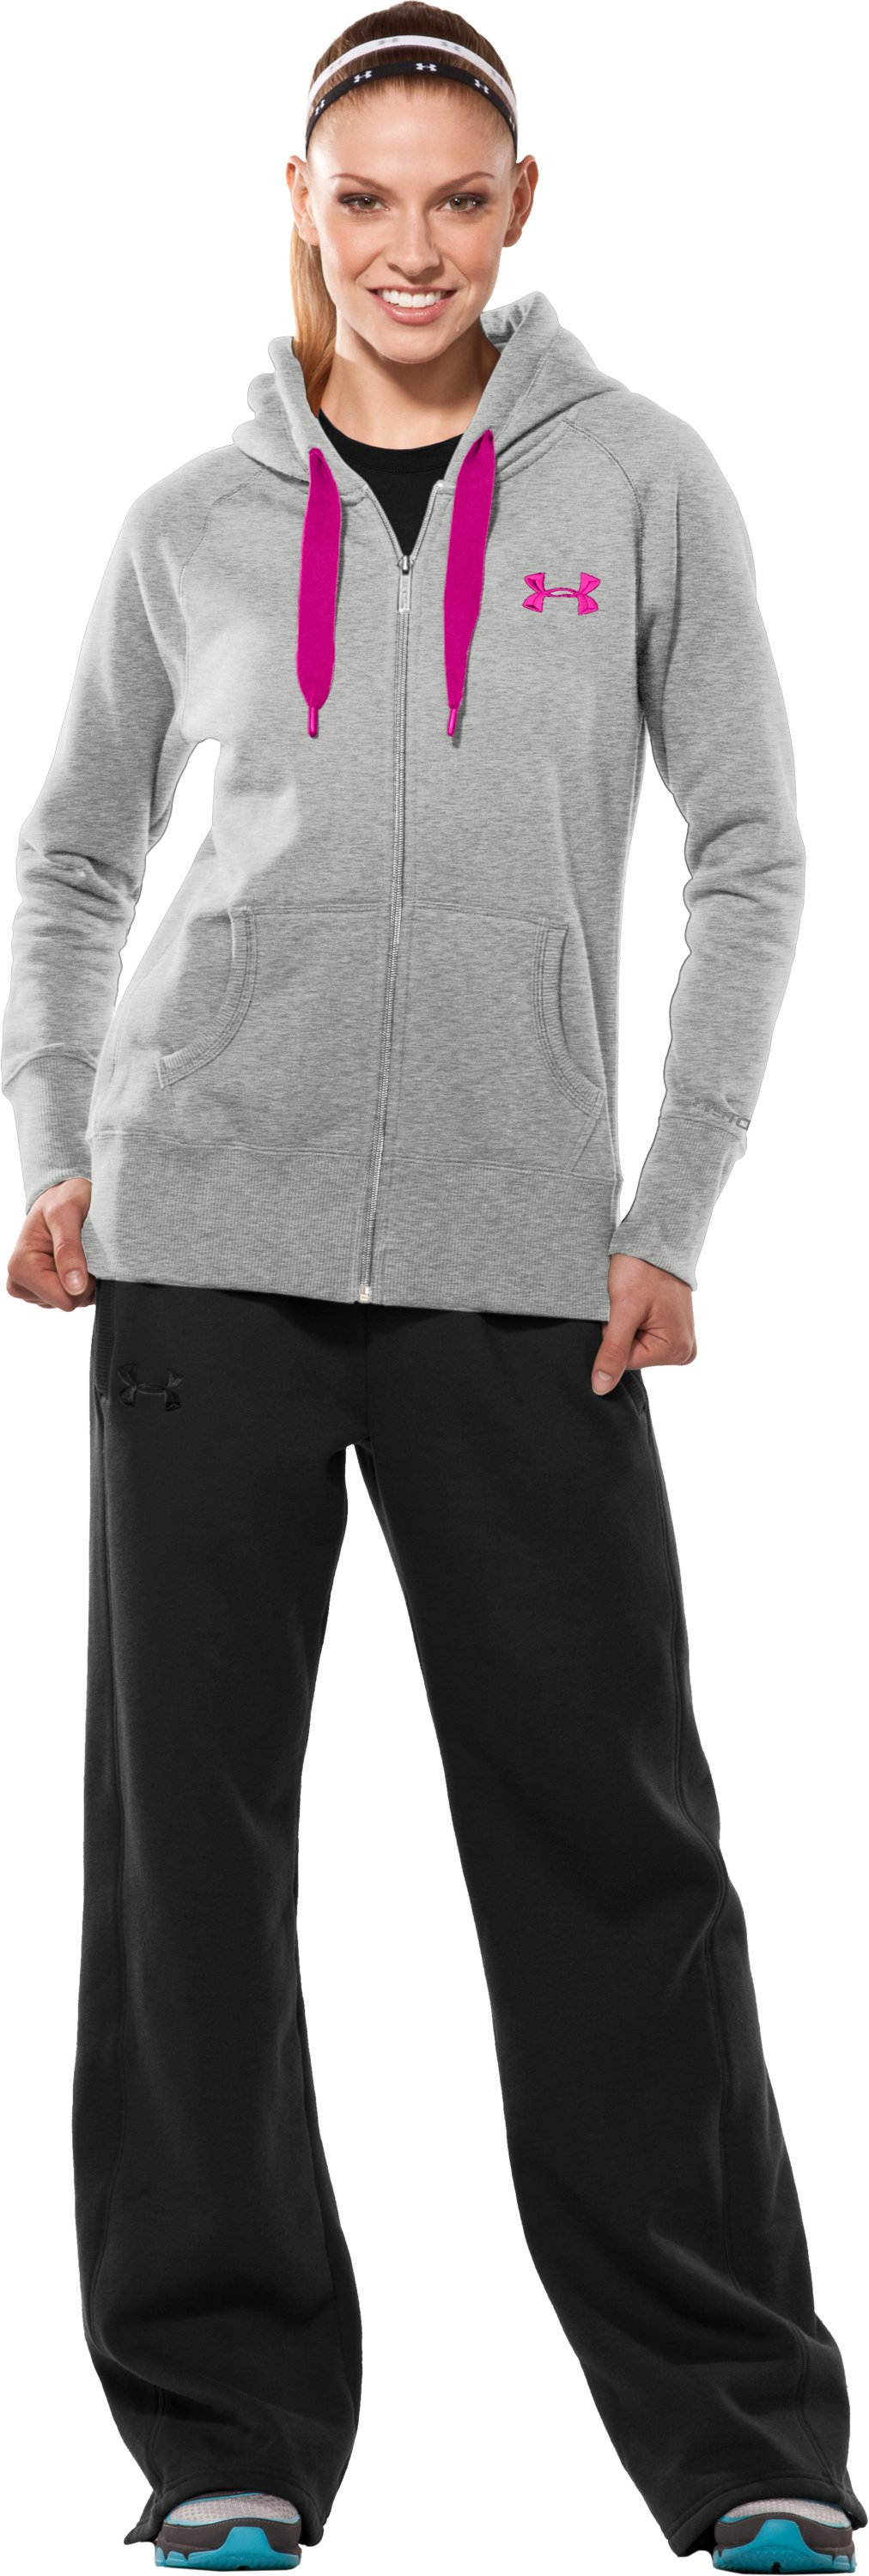 Women's Charged Cotton® Storm Full Zip Hoodie, Silver Heather